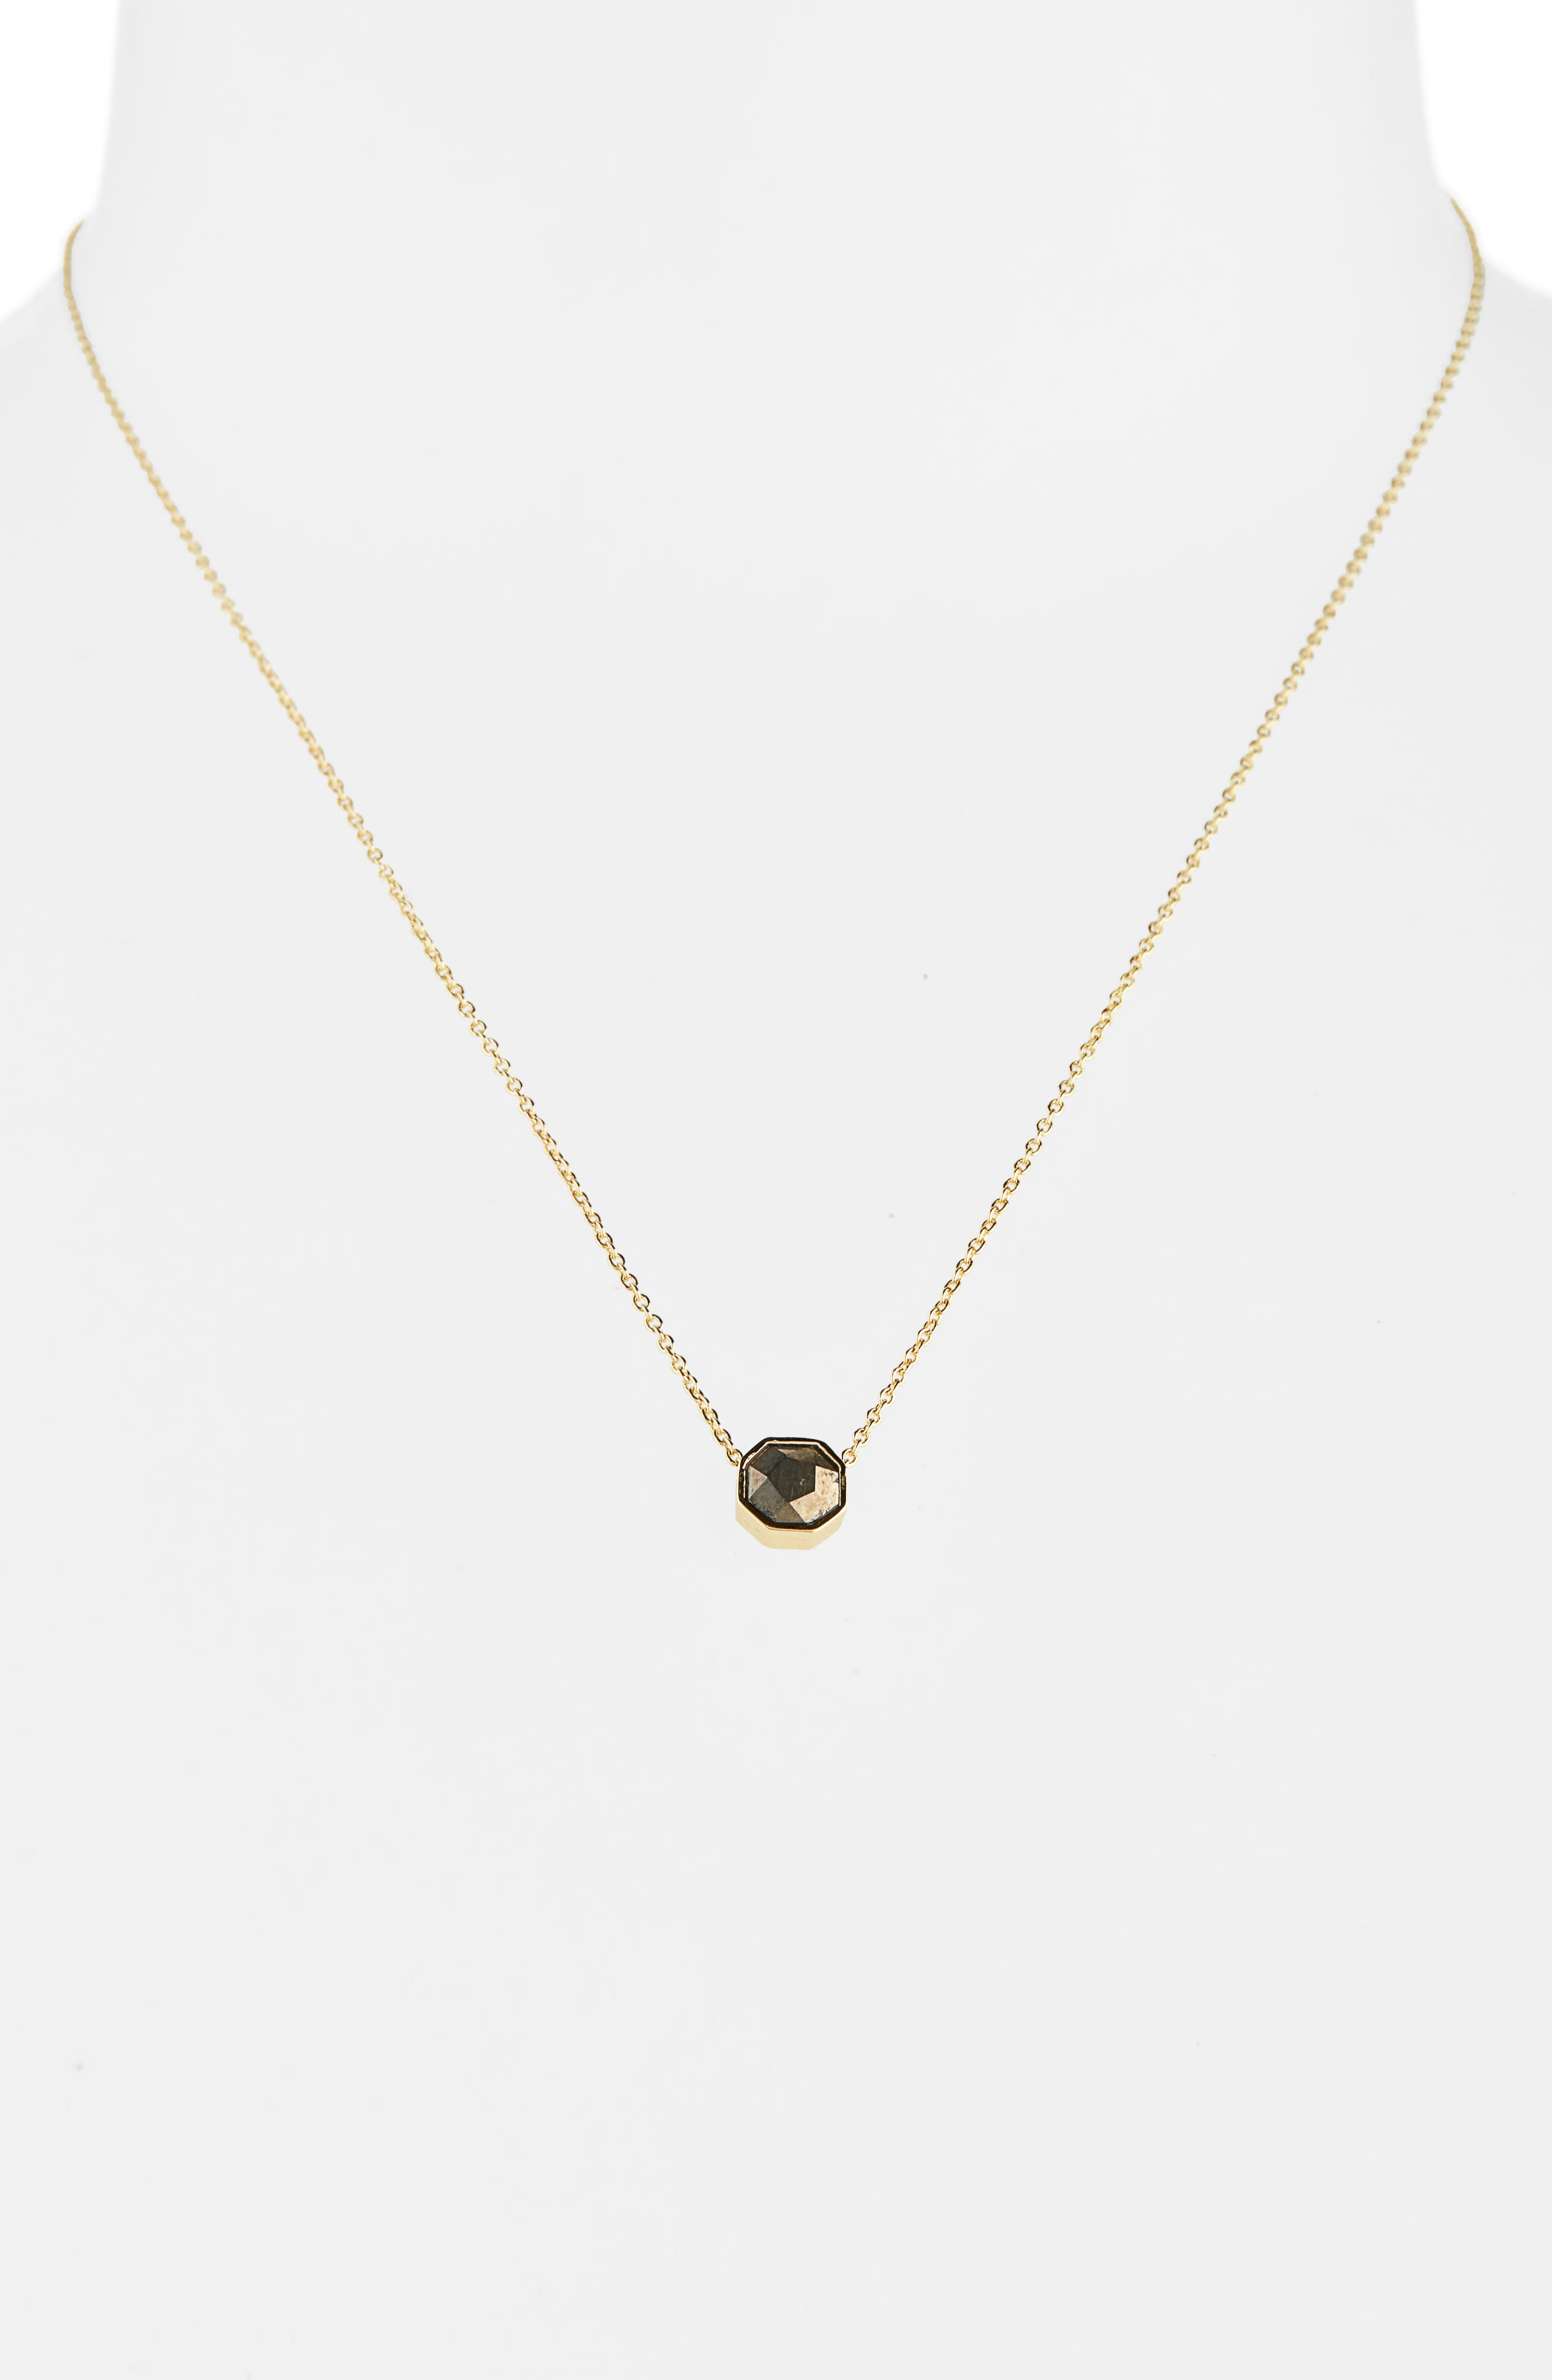 Power Gemstone Charm Adjustable Necklace,                         Main,                         color, PYRITE/ GOLD